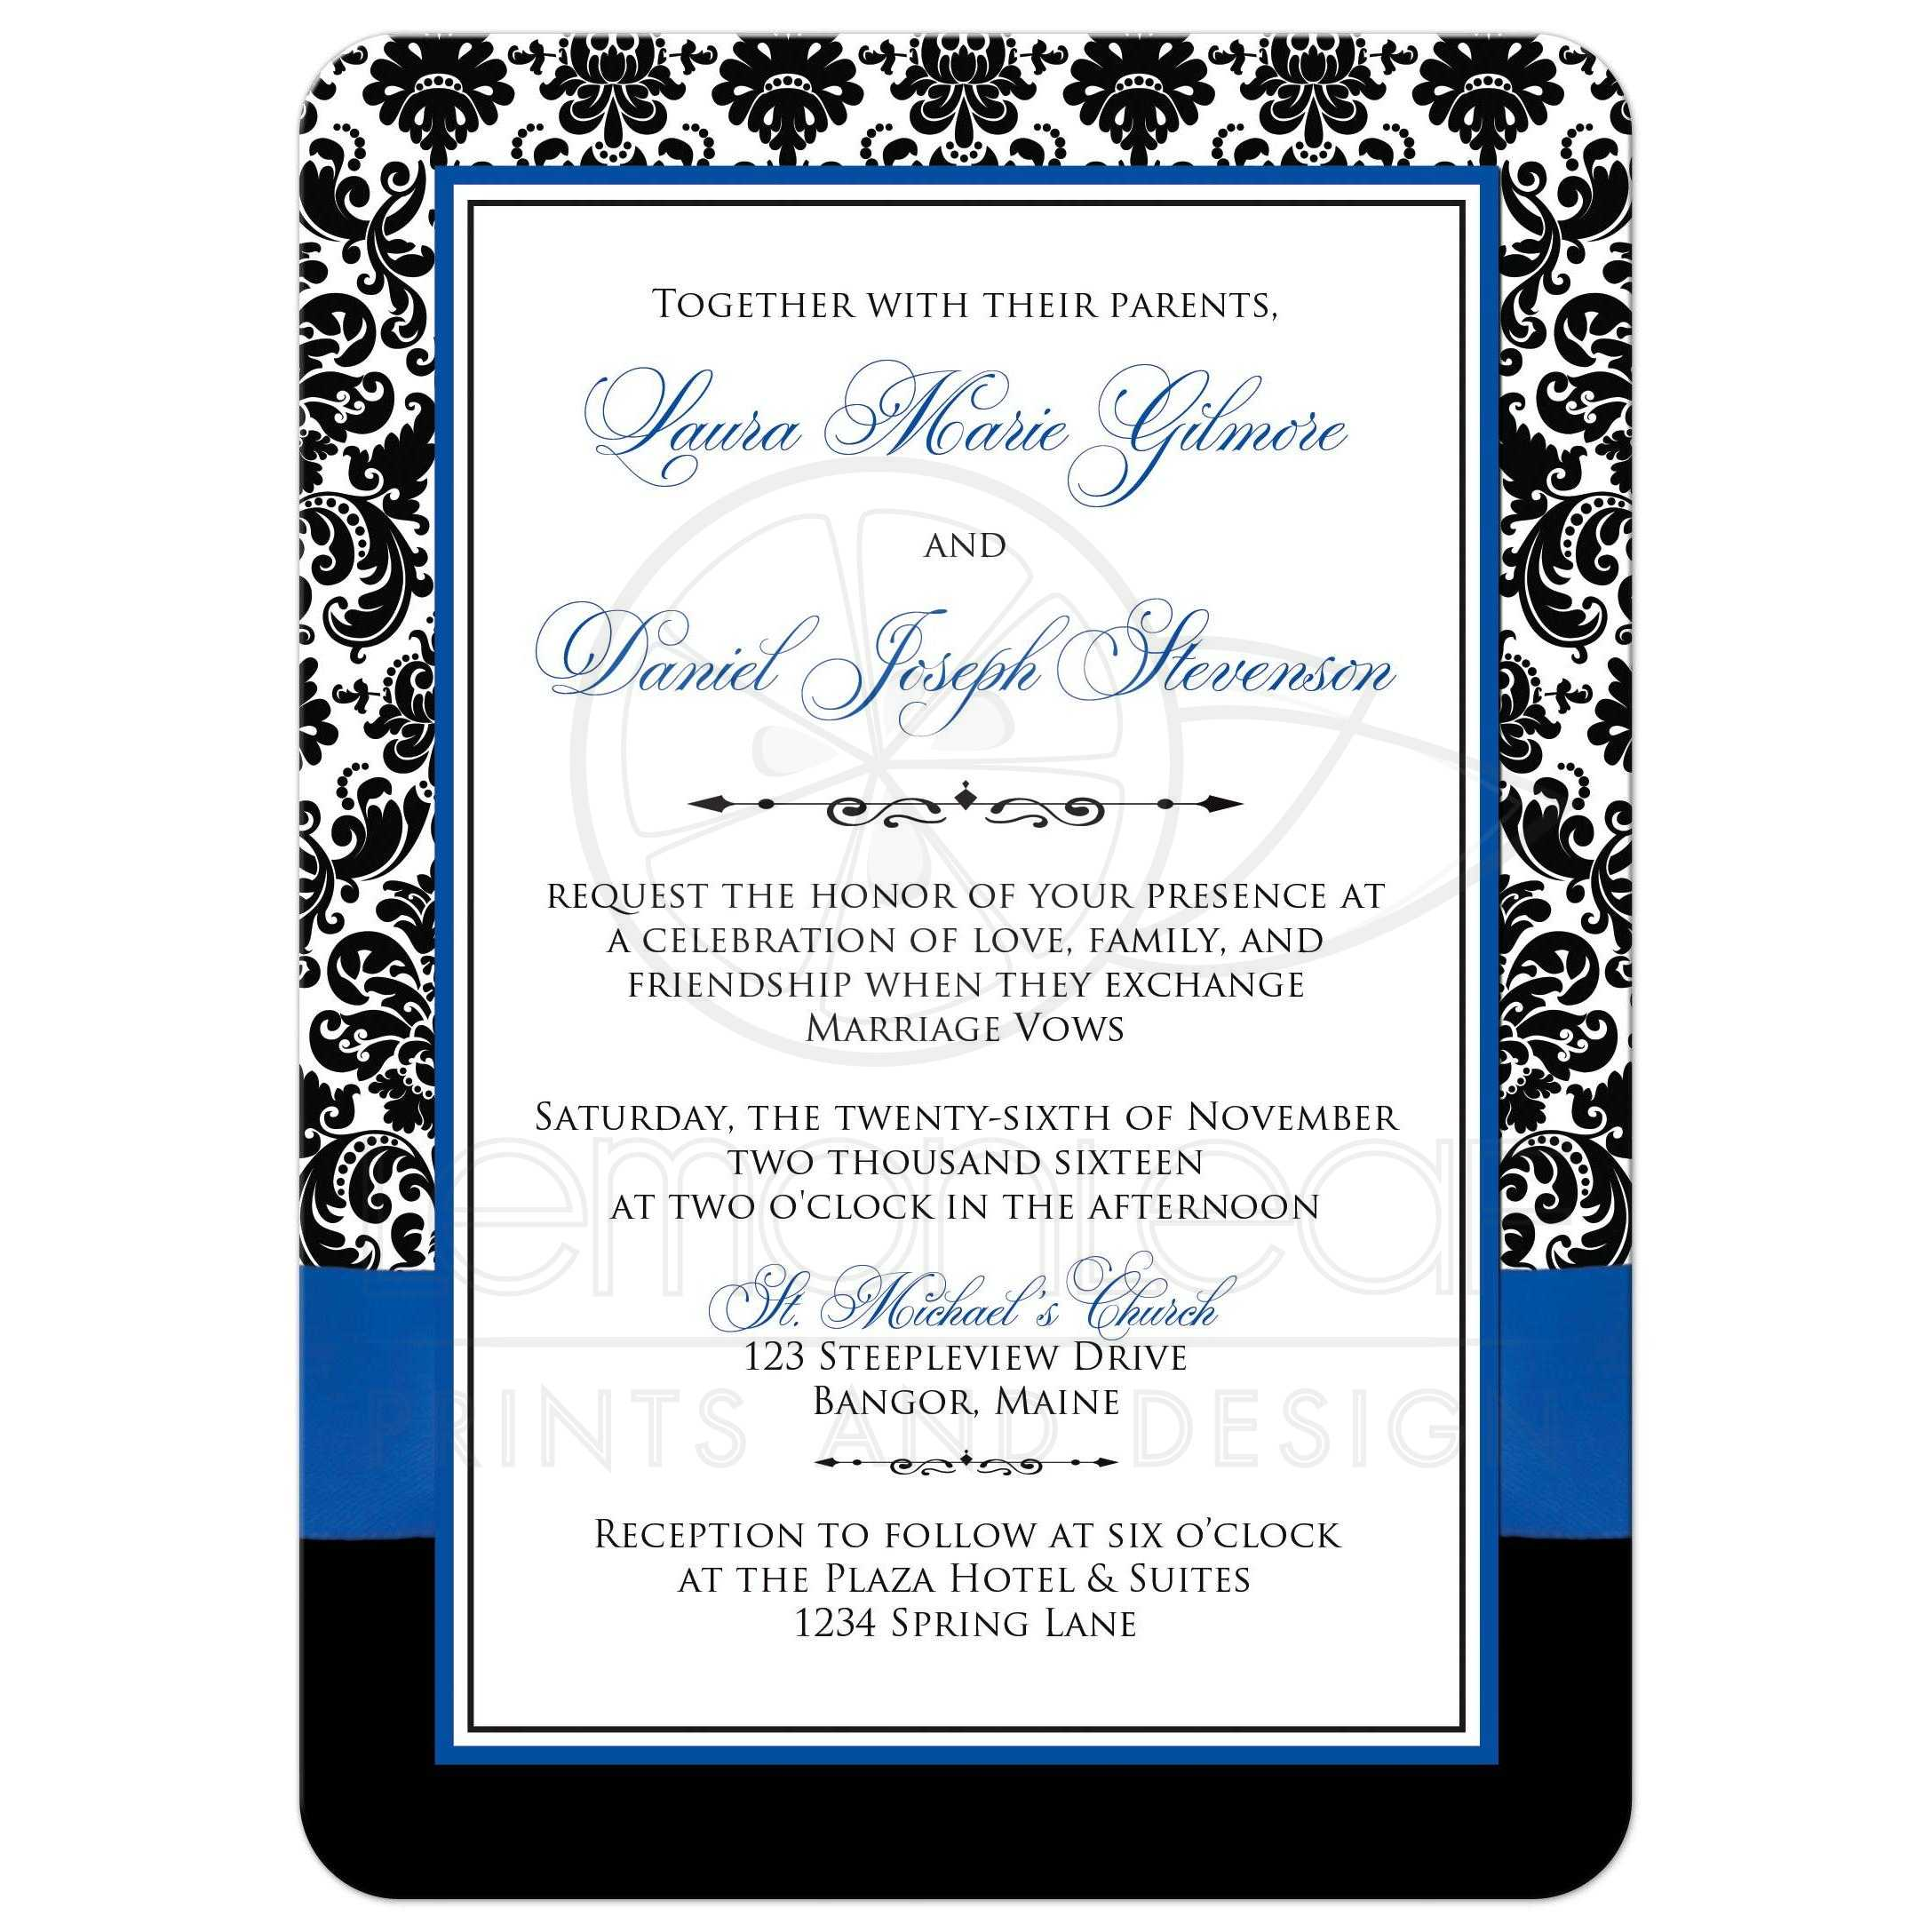 Wedding Invitation Postcard with good invitation layout